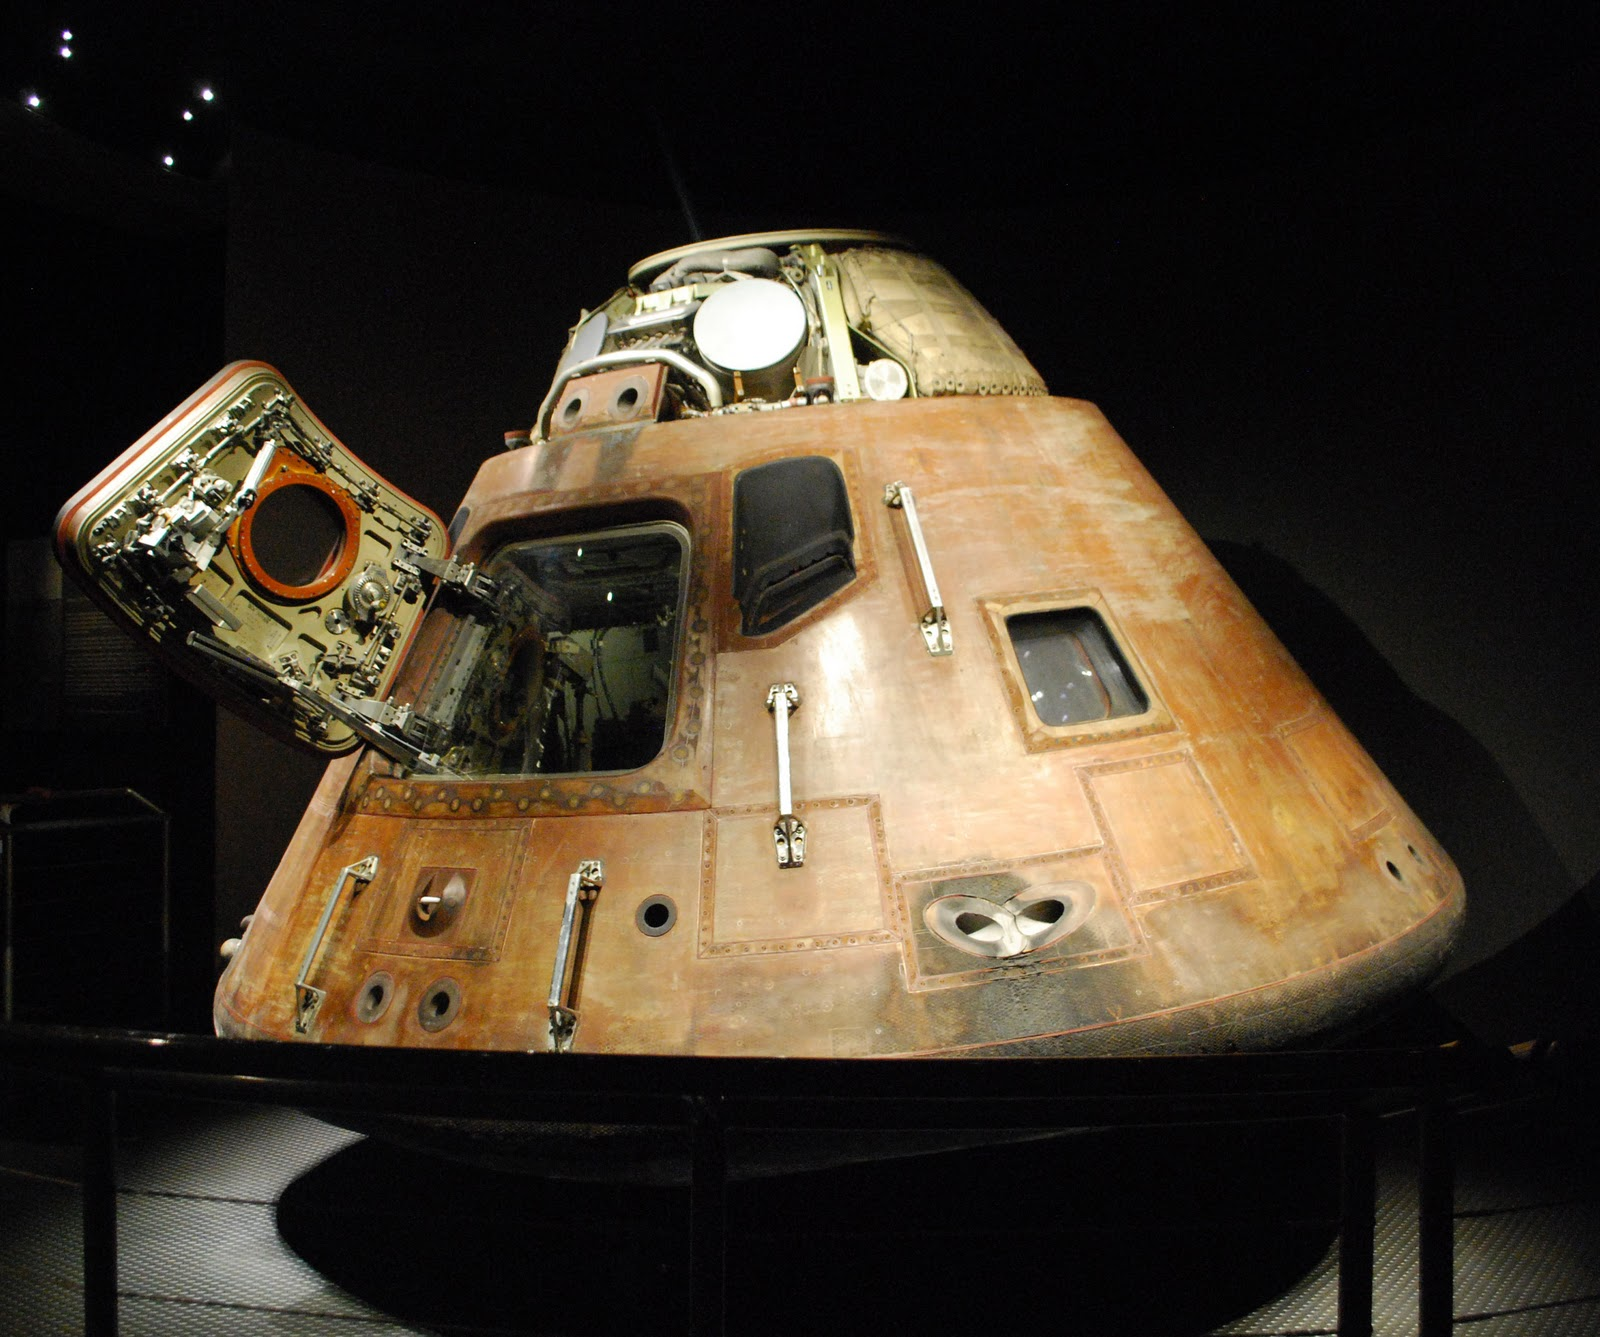 Orion Space Capsule vs Apollo (page 2) - Pics about space